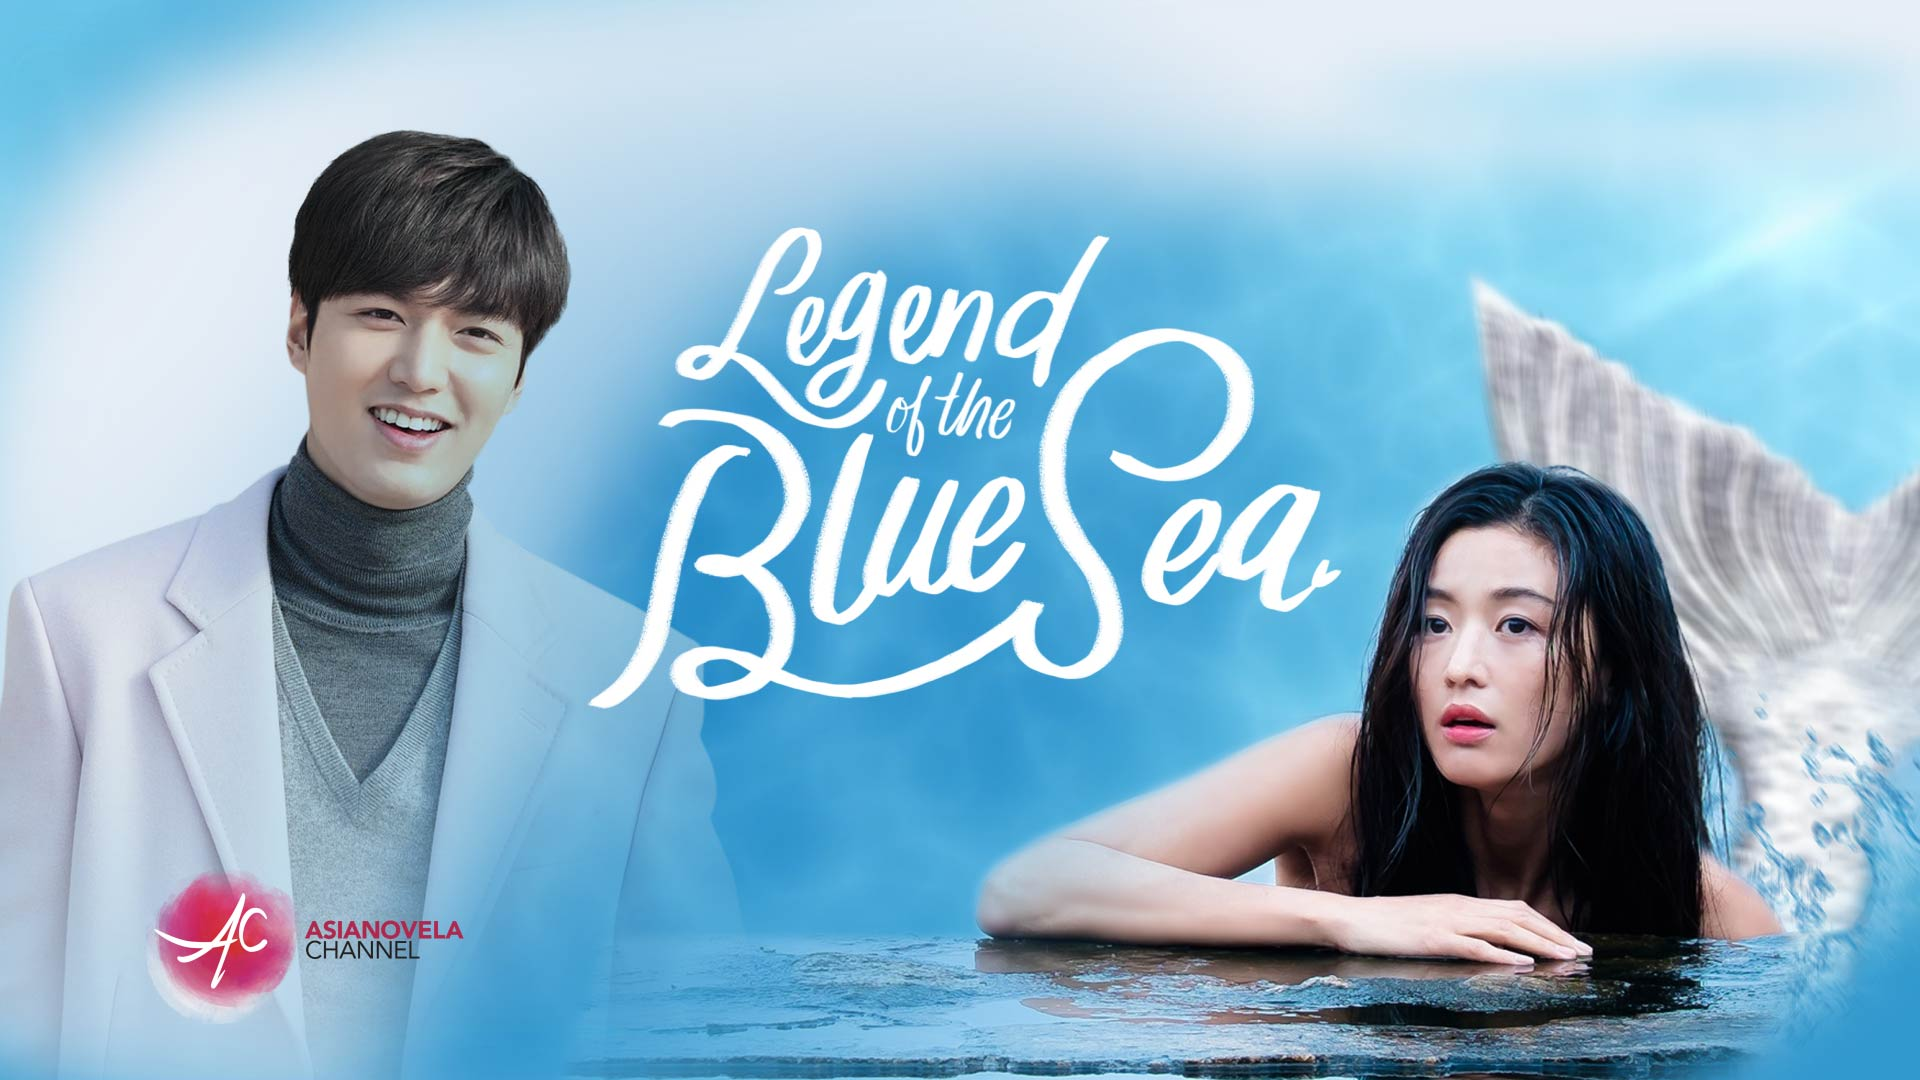 Legend of the Blue Sea sa Asianovela Channel